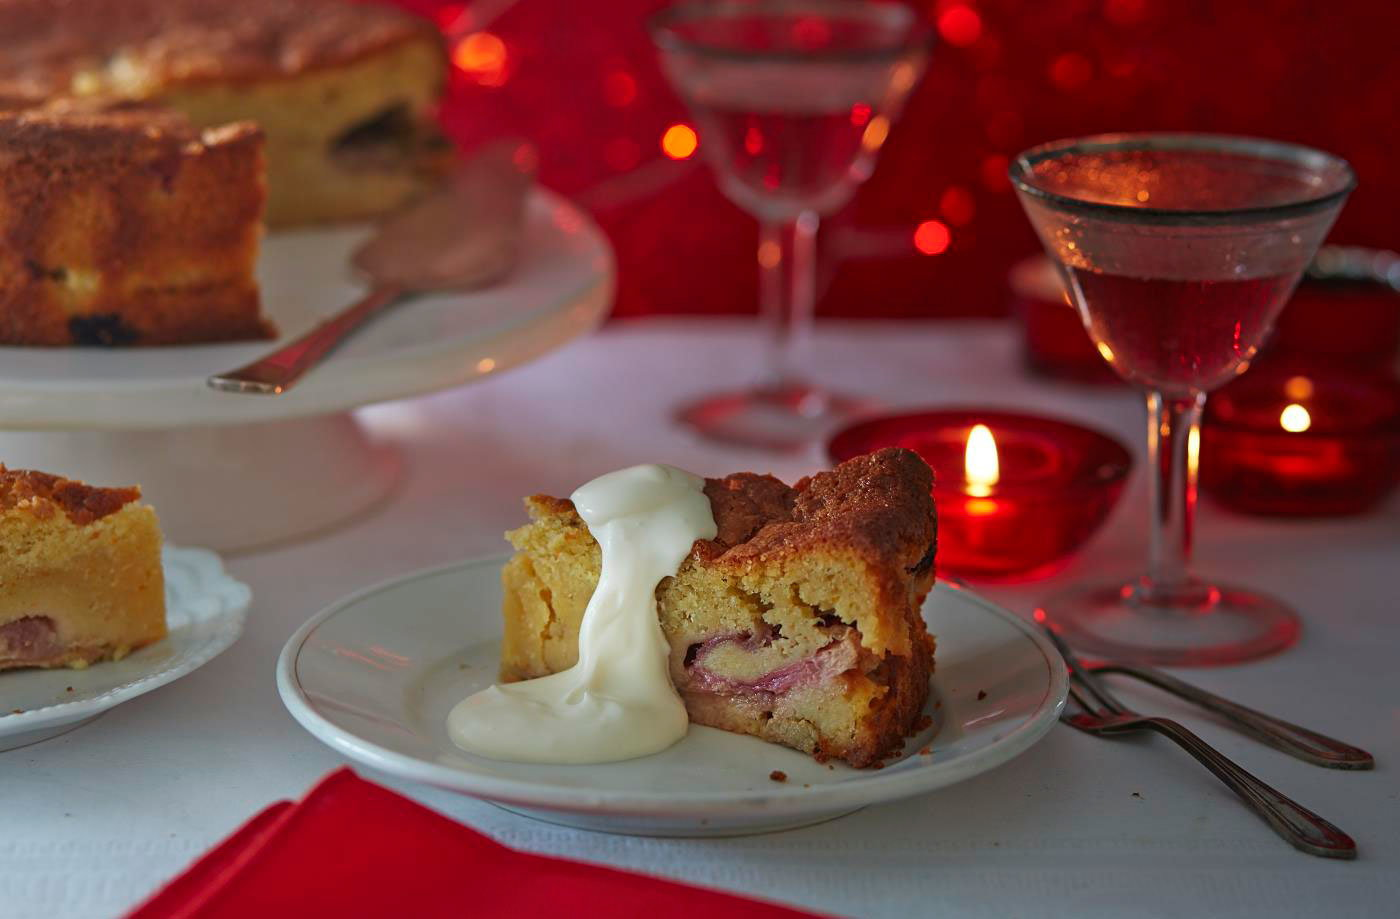 Rhubarb cake with cardamom and custard recipe